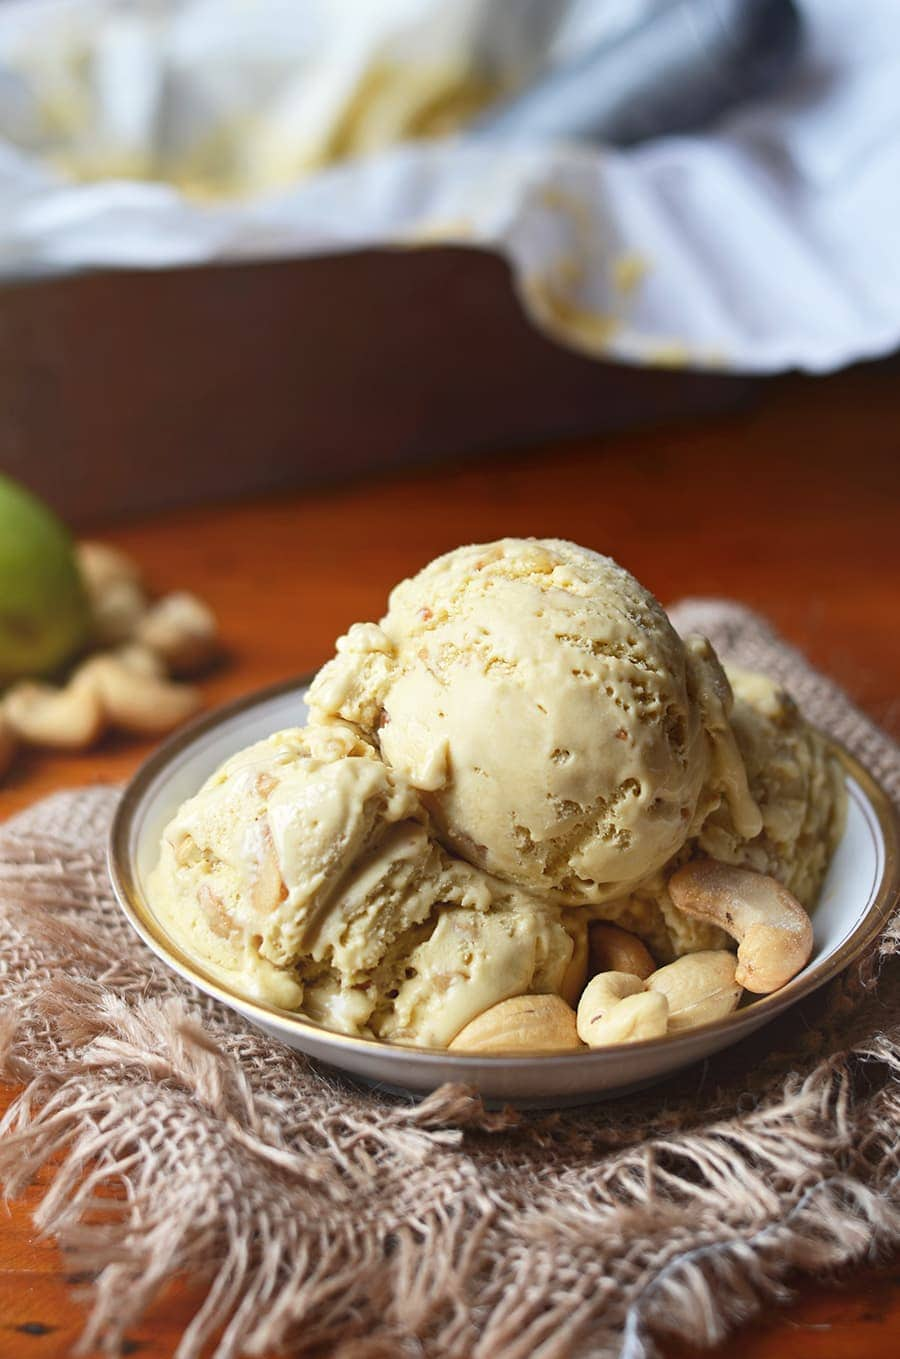 This delectable Caramel Pawpaw Ice Cream scratches all your sinful itches. It's creamy, crunchy, salty, and sweet with a hint of banana mango flavor from exotic pawpaw fruit.